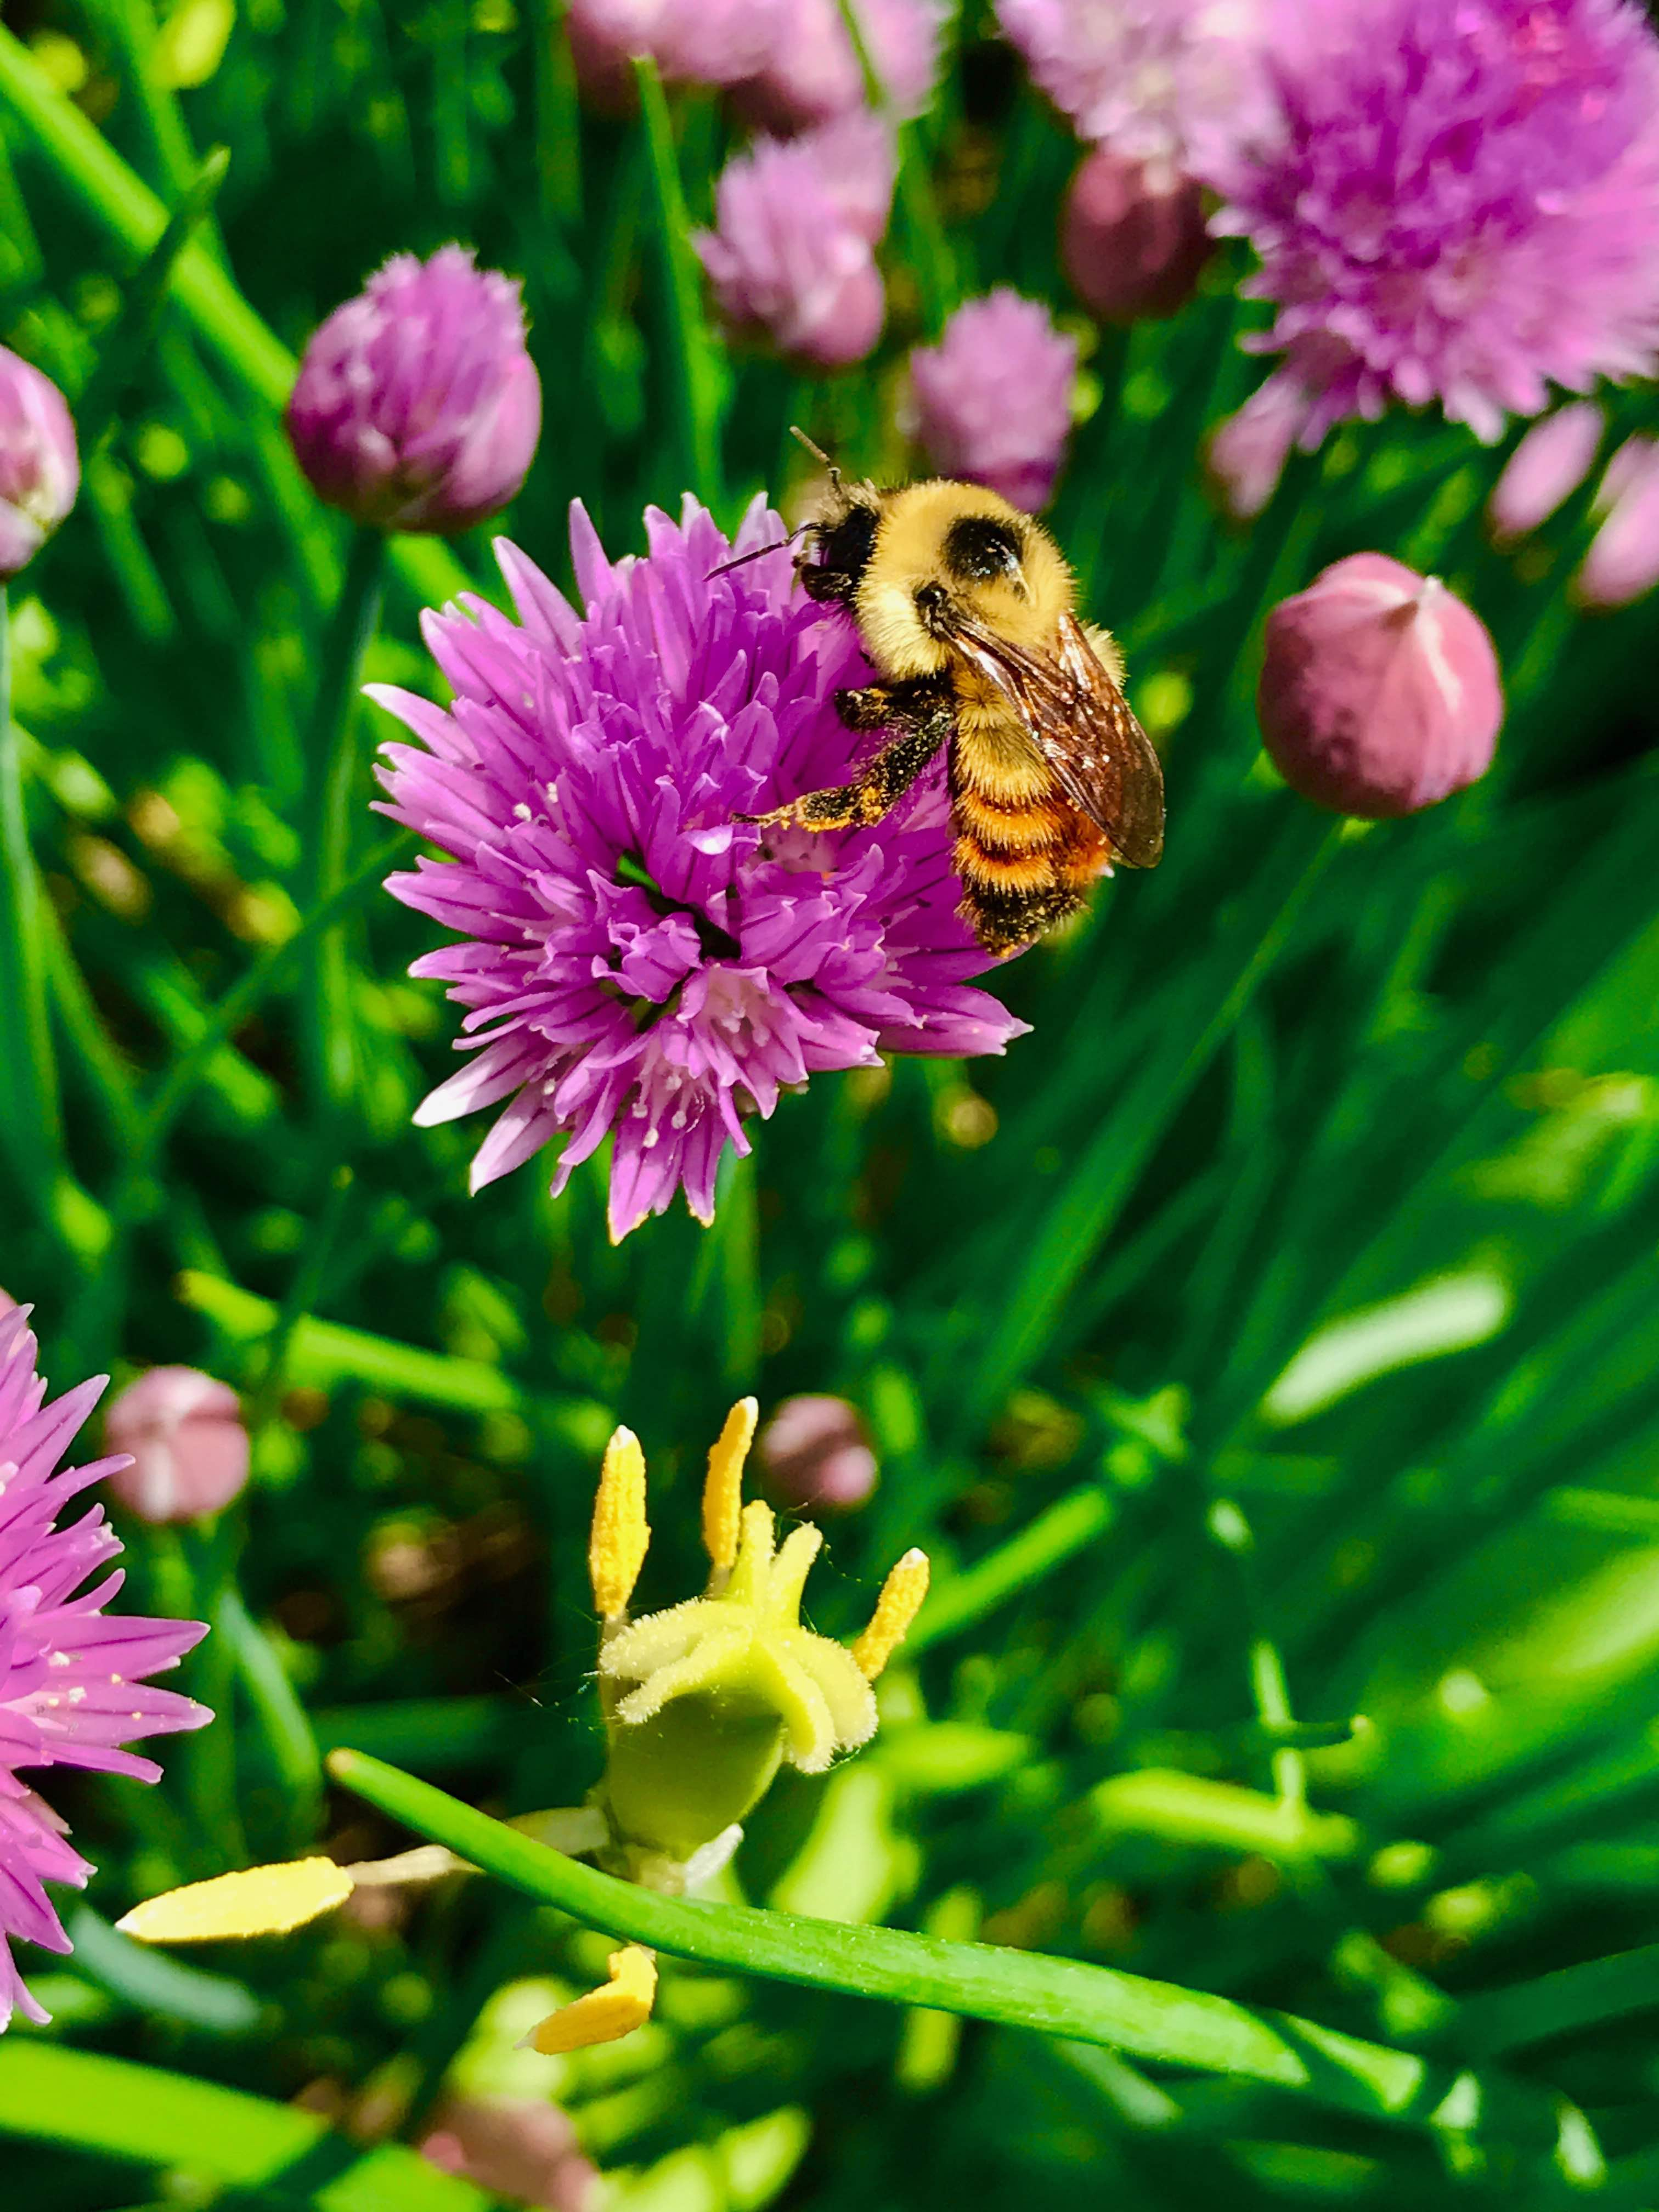 Bombus rufocinctus, the red-belted bumblebee, covered in pollen while visiting a chive flower in Ottawa, Canada. Credit: Jeremy T. Kerr